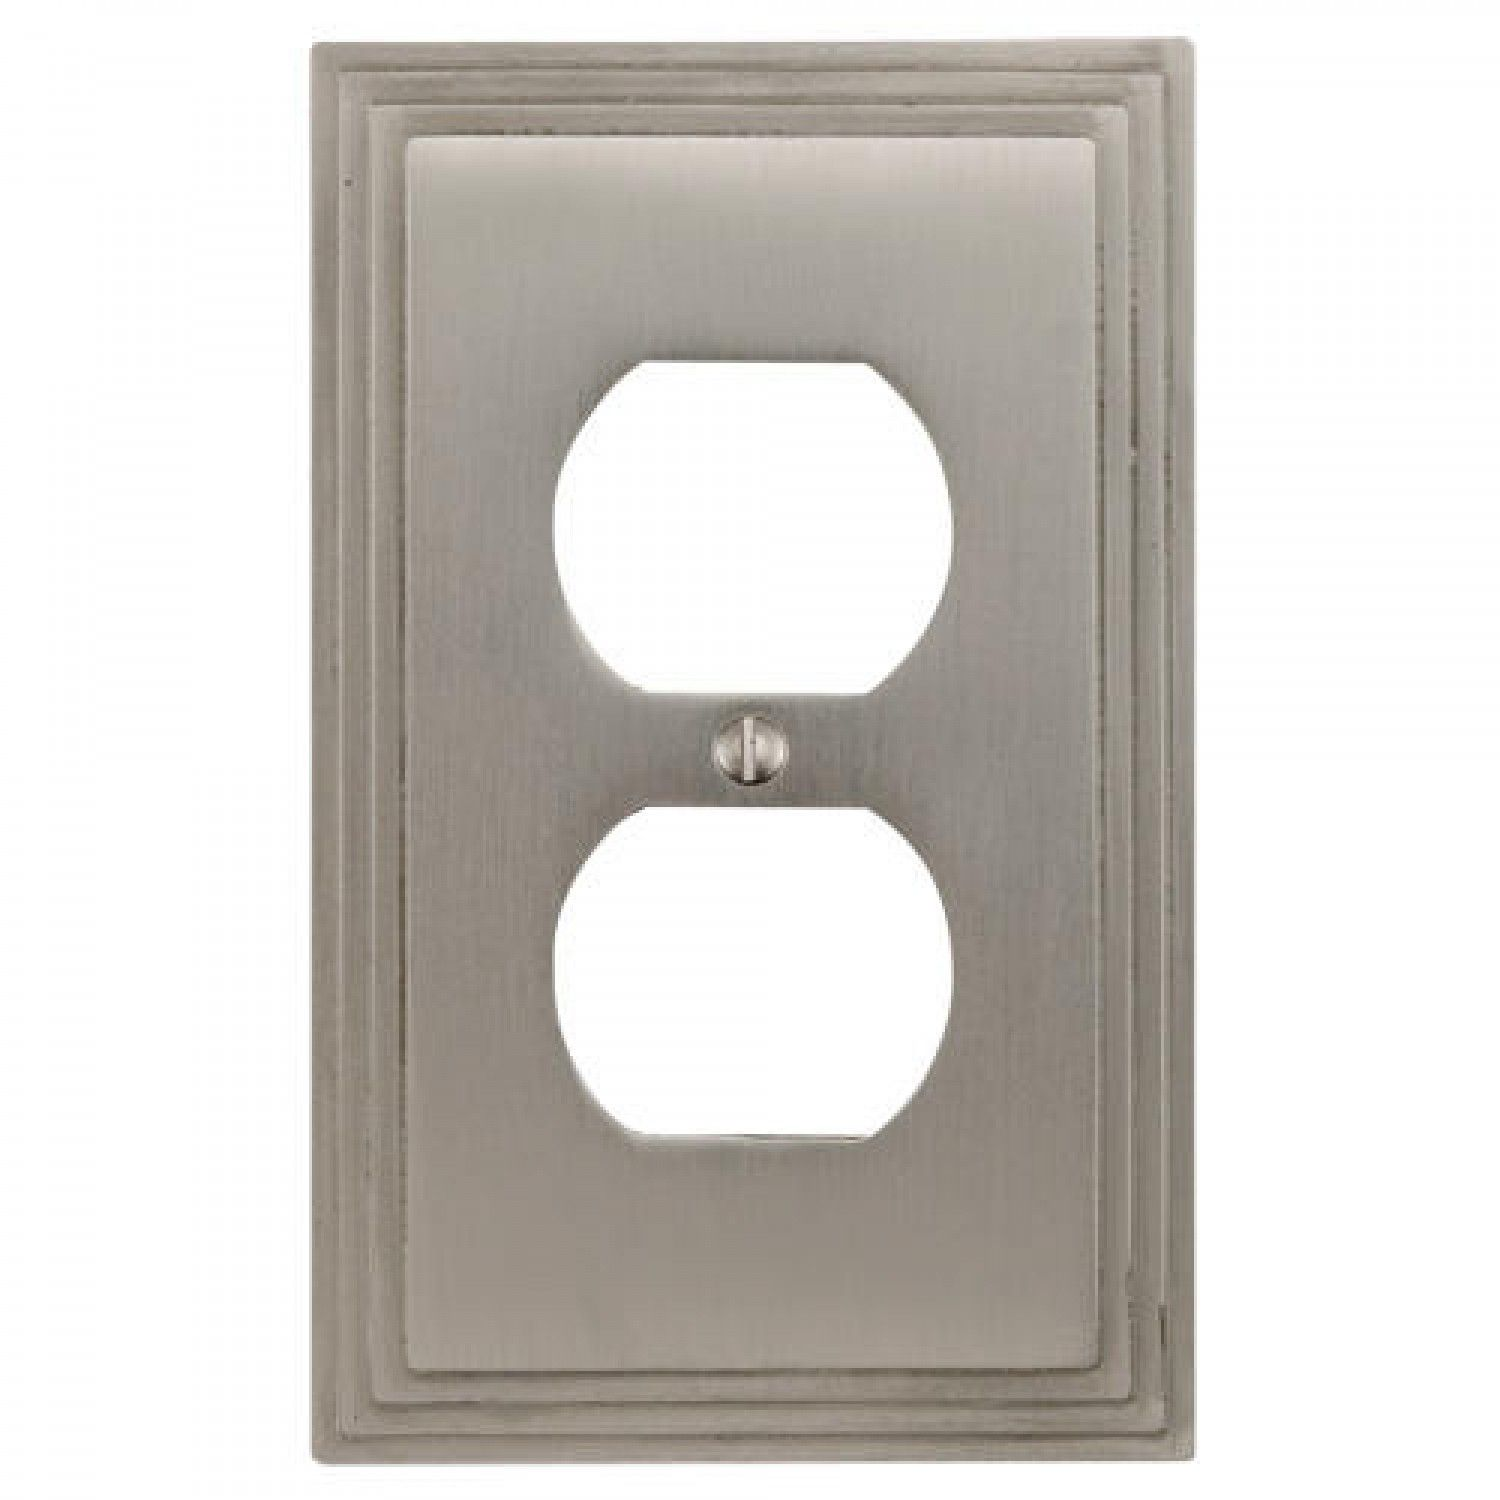 Metal Cover Plates For Electrical Custom Deco Design Solid Brass Duplex Outlet Cover  Solid Brass Outlets Design Ideas